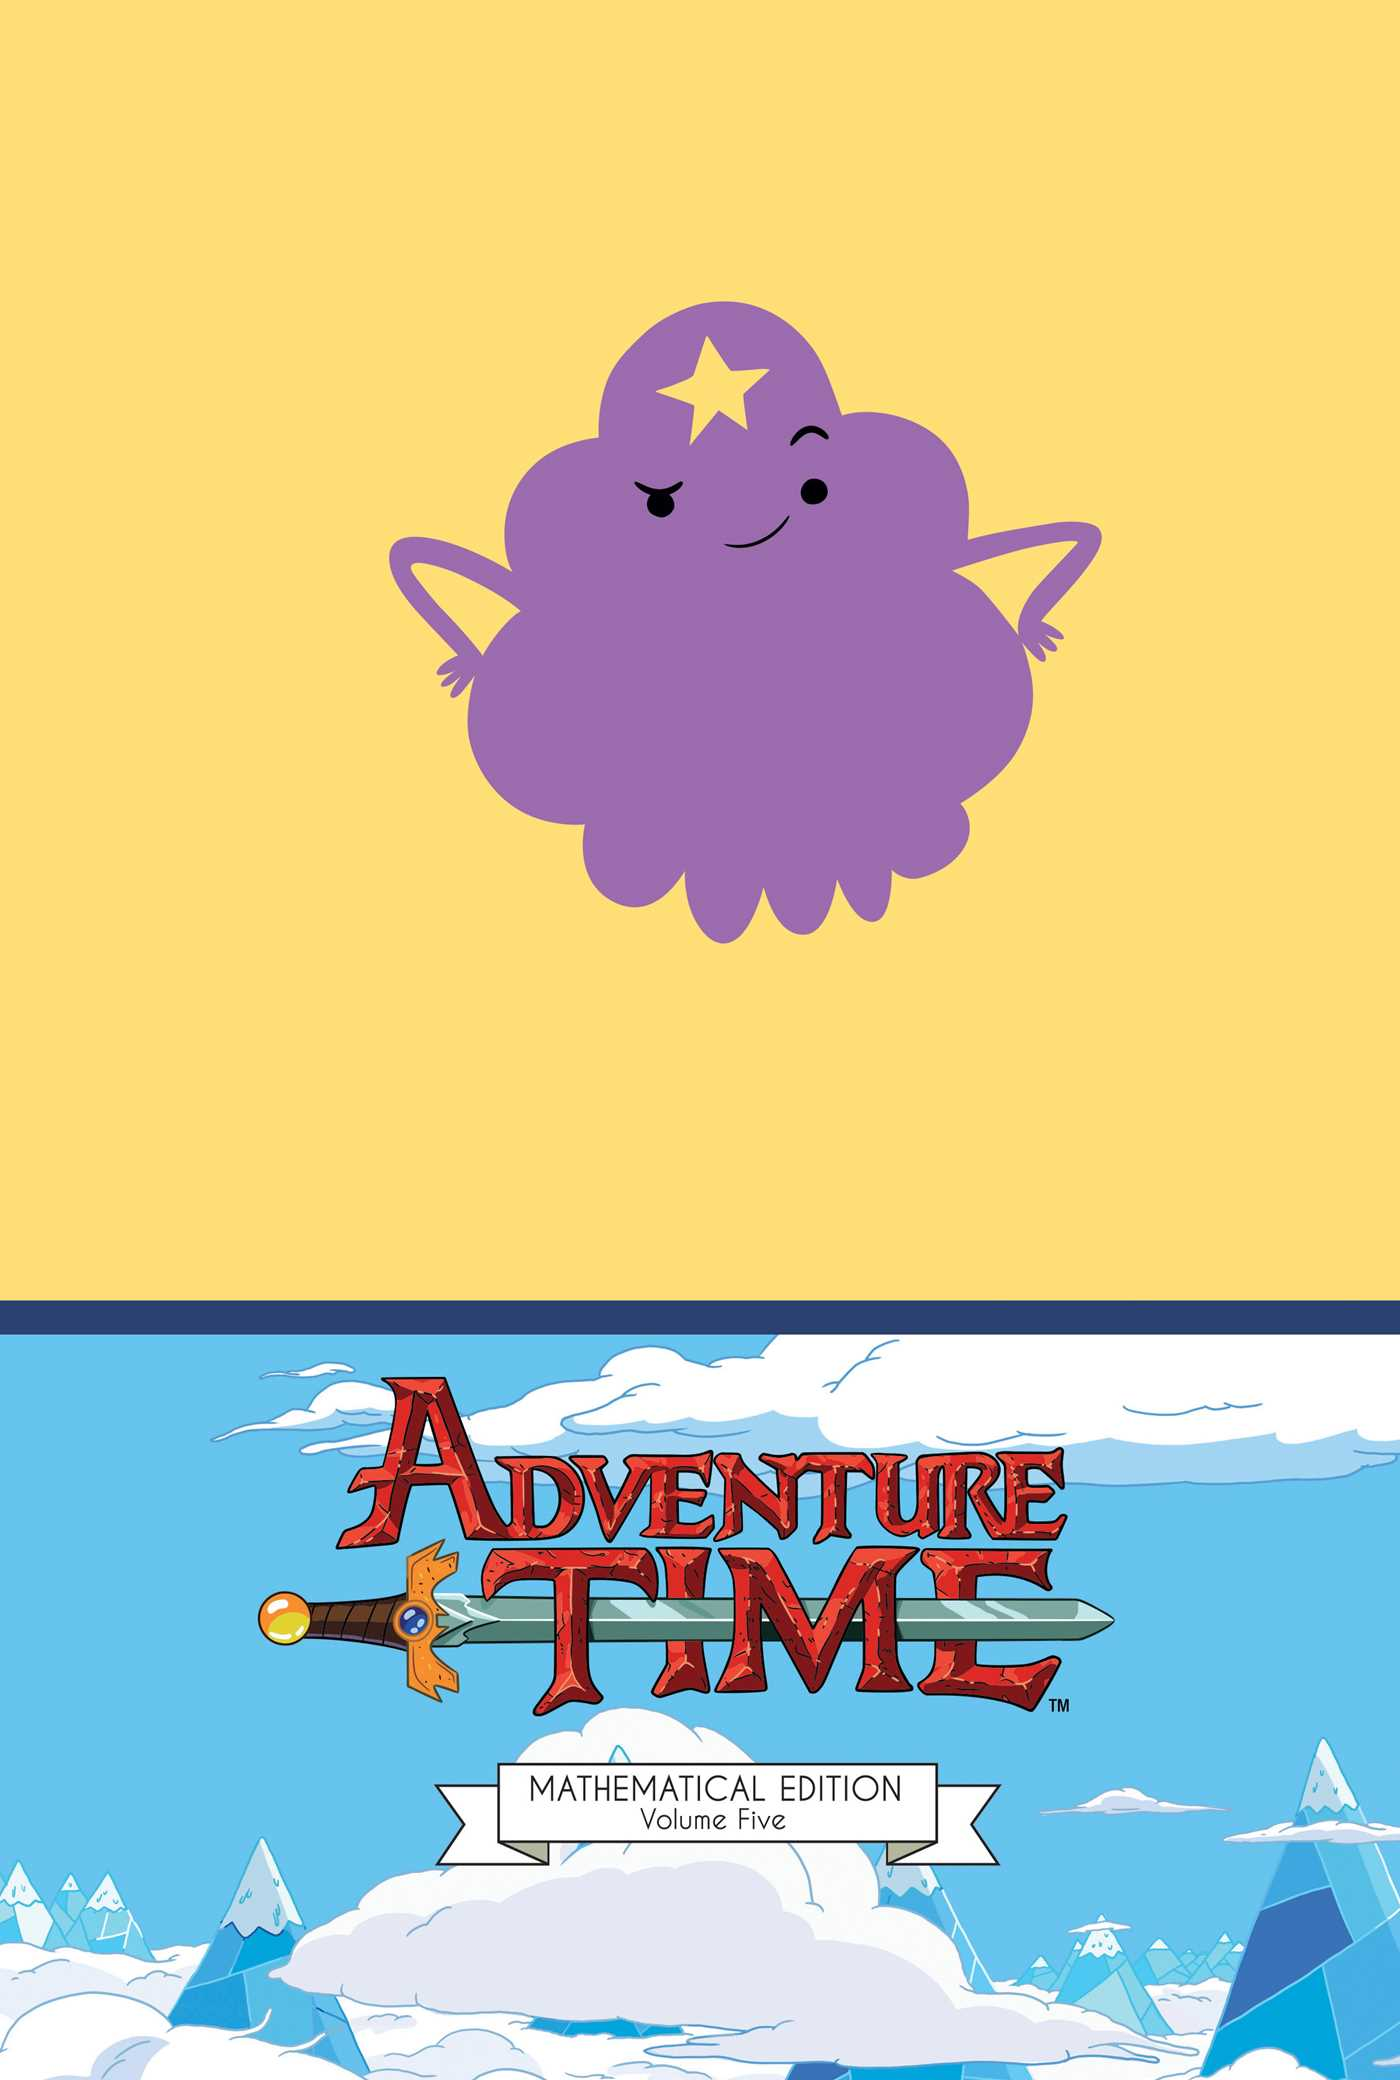 Adventure-time-vol-5-mathematical-edition-9781608864799_hr